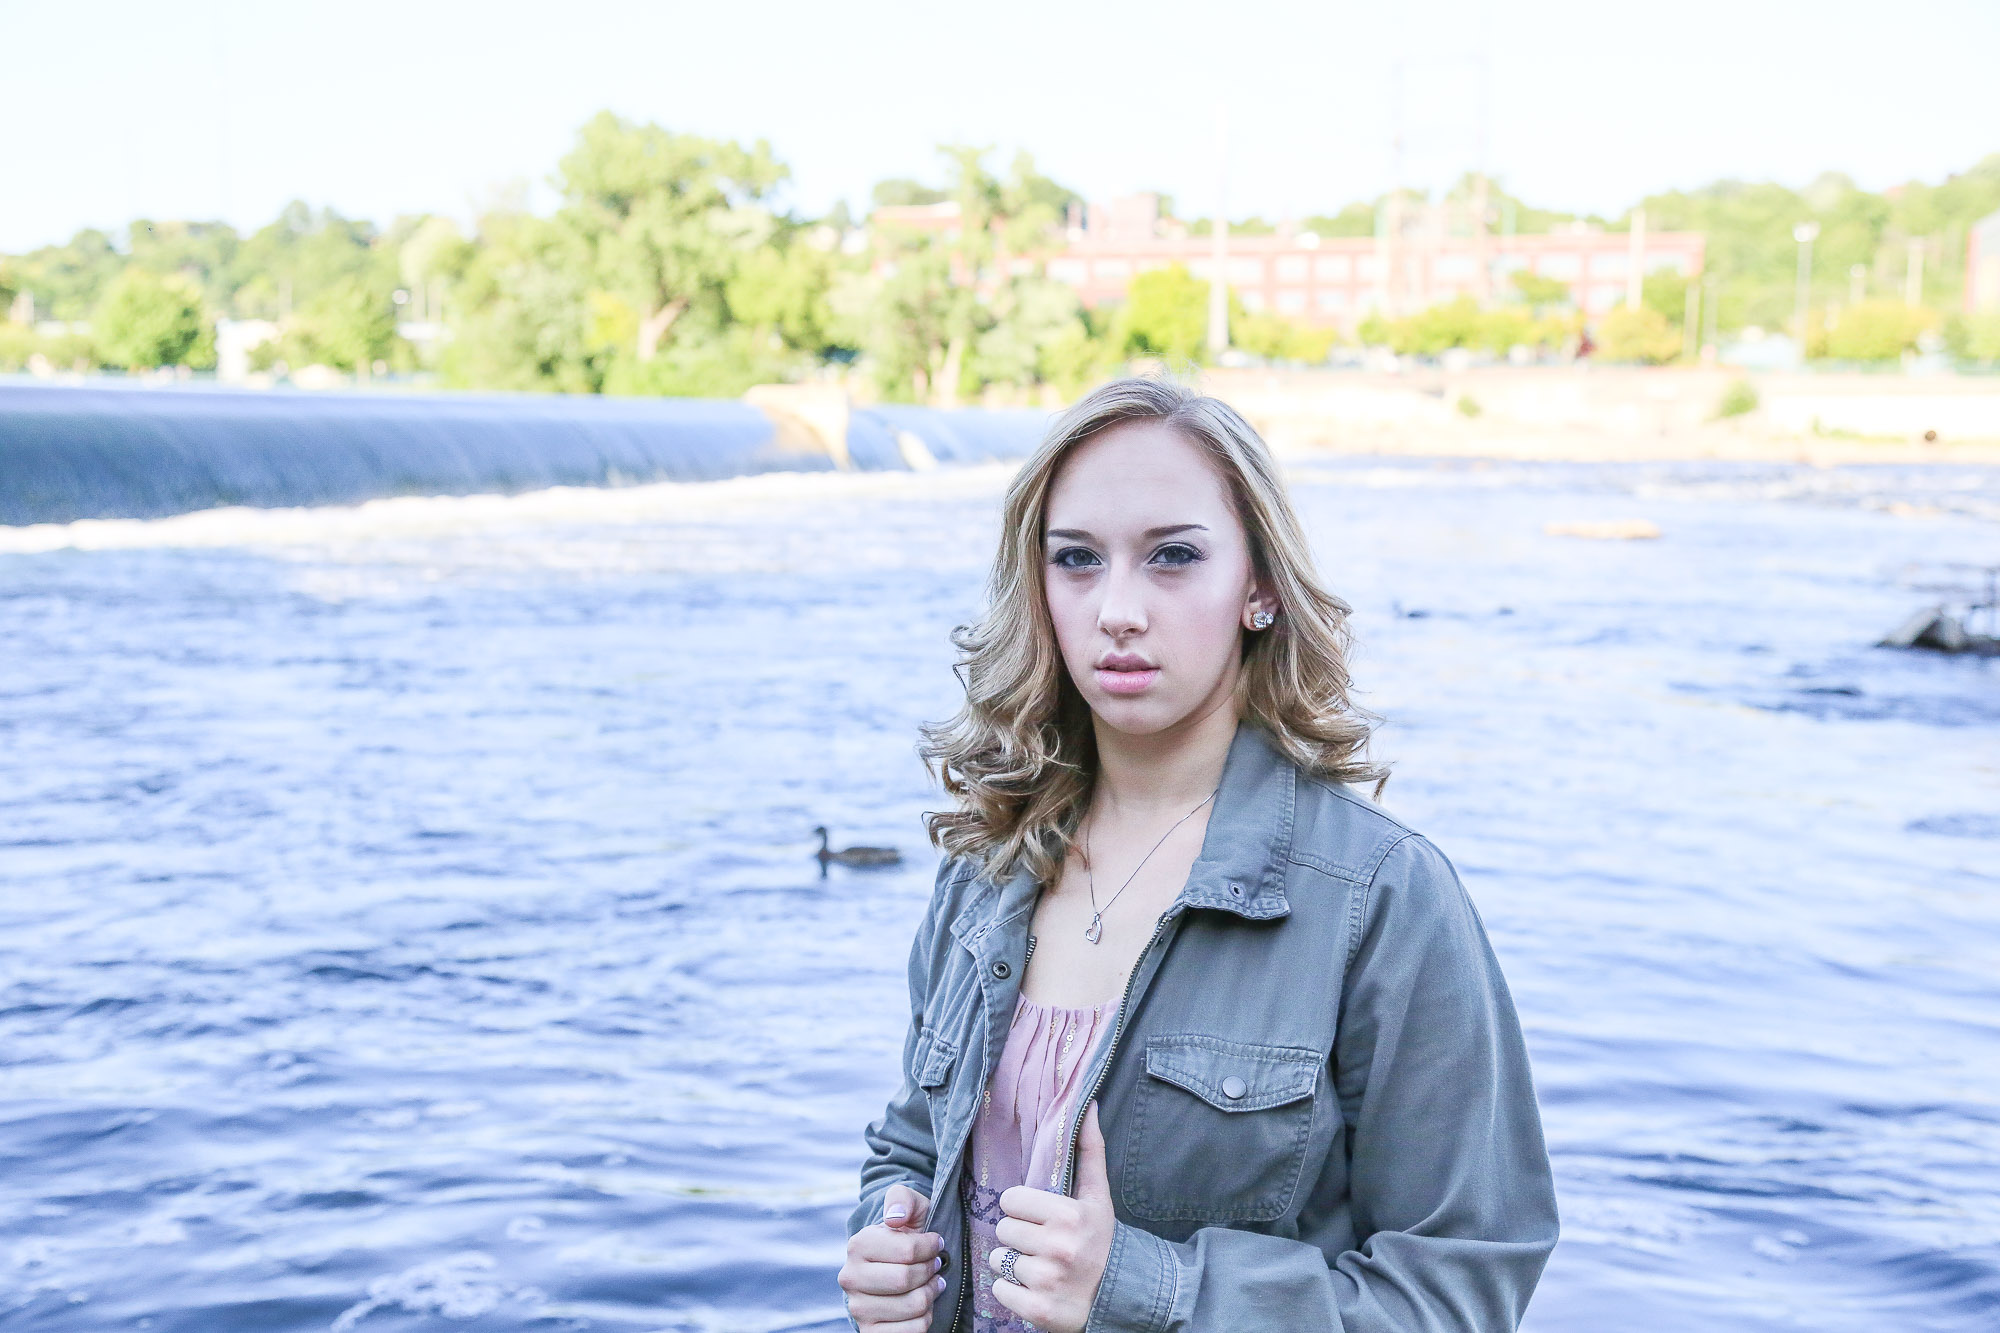 Natalie Stockel's senior photography session at the Green Bridge, located in Grand Rapids, Michigan.